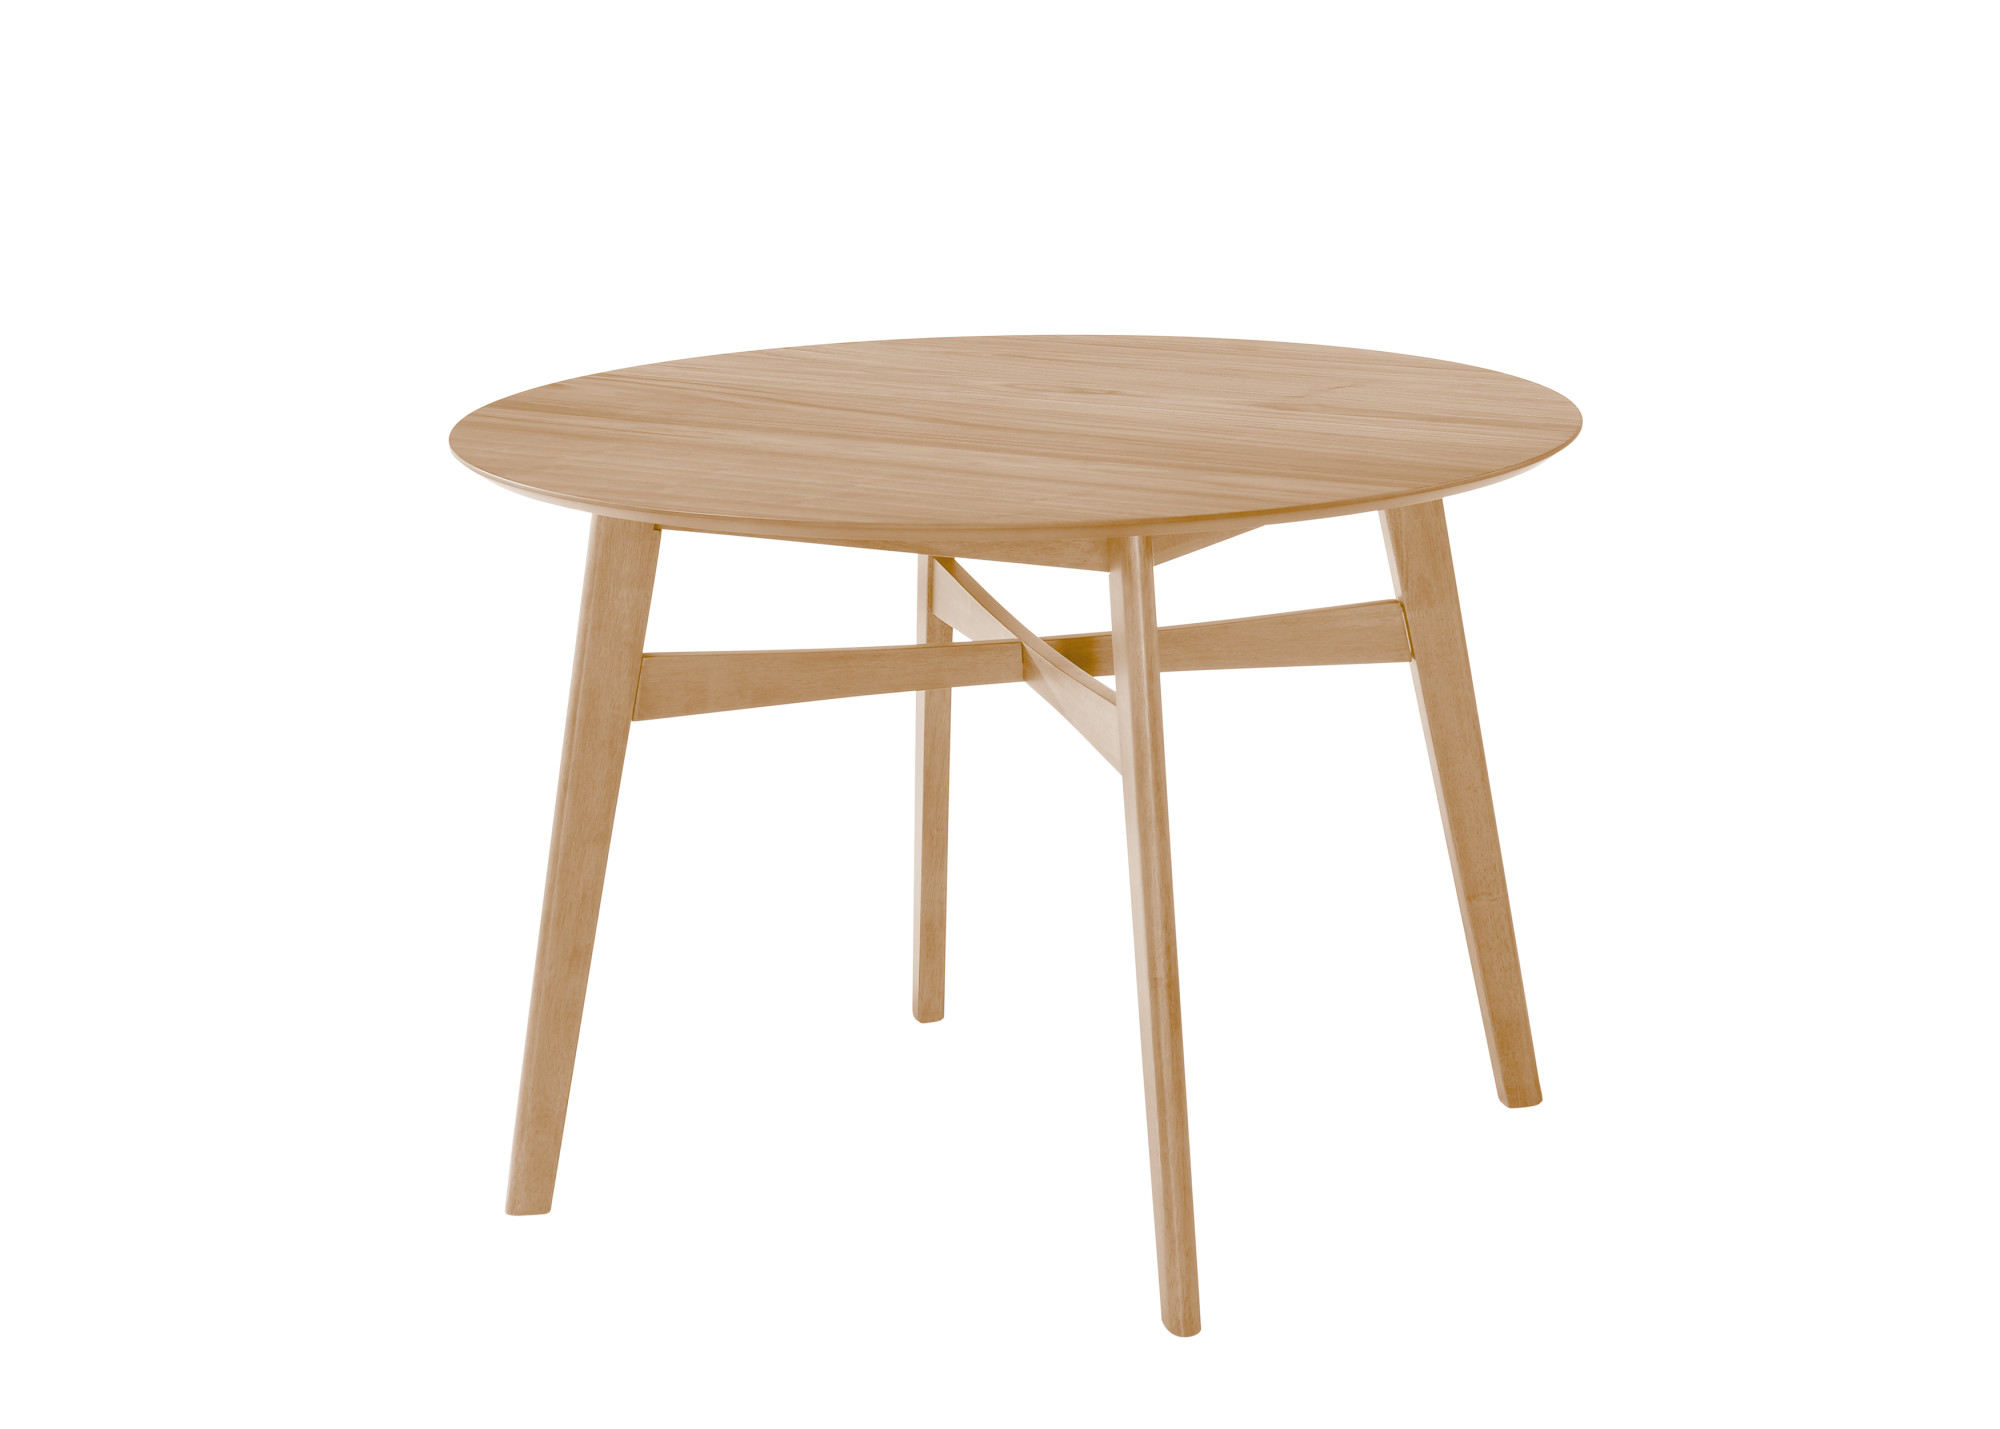 "Emerald Home Simplicity Round Dining Table 42"" Natural D546-15 by Emerald Home Furnishings, LLC"